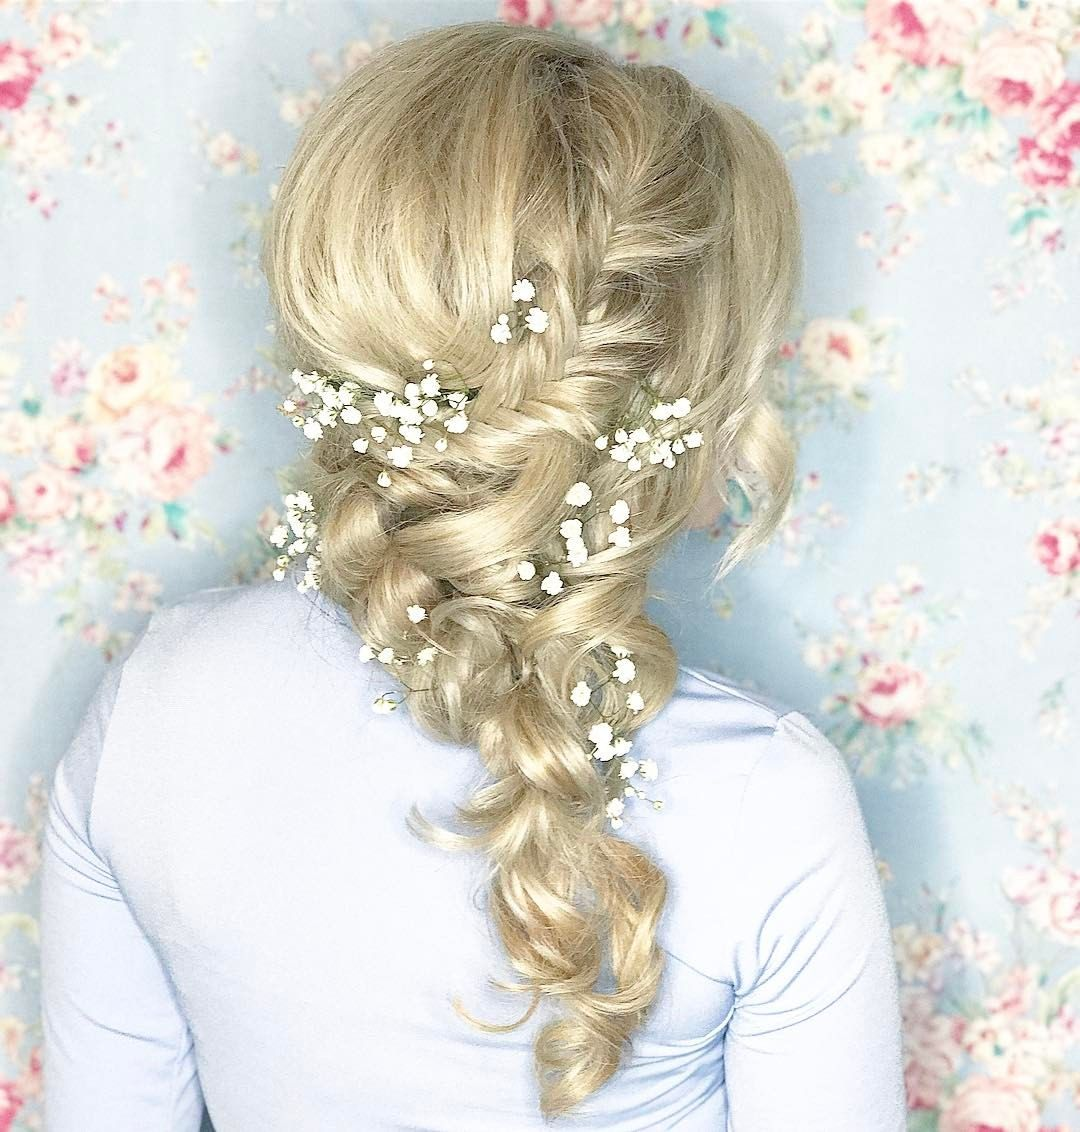 sideswept hairstyle for maternity shoot fishtail braid